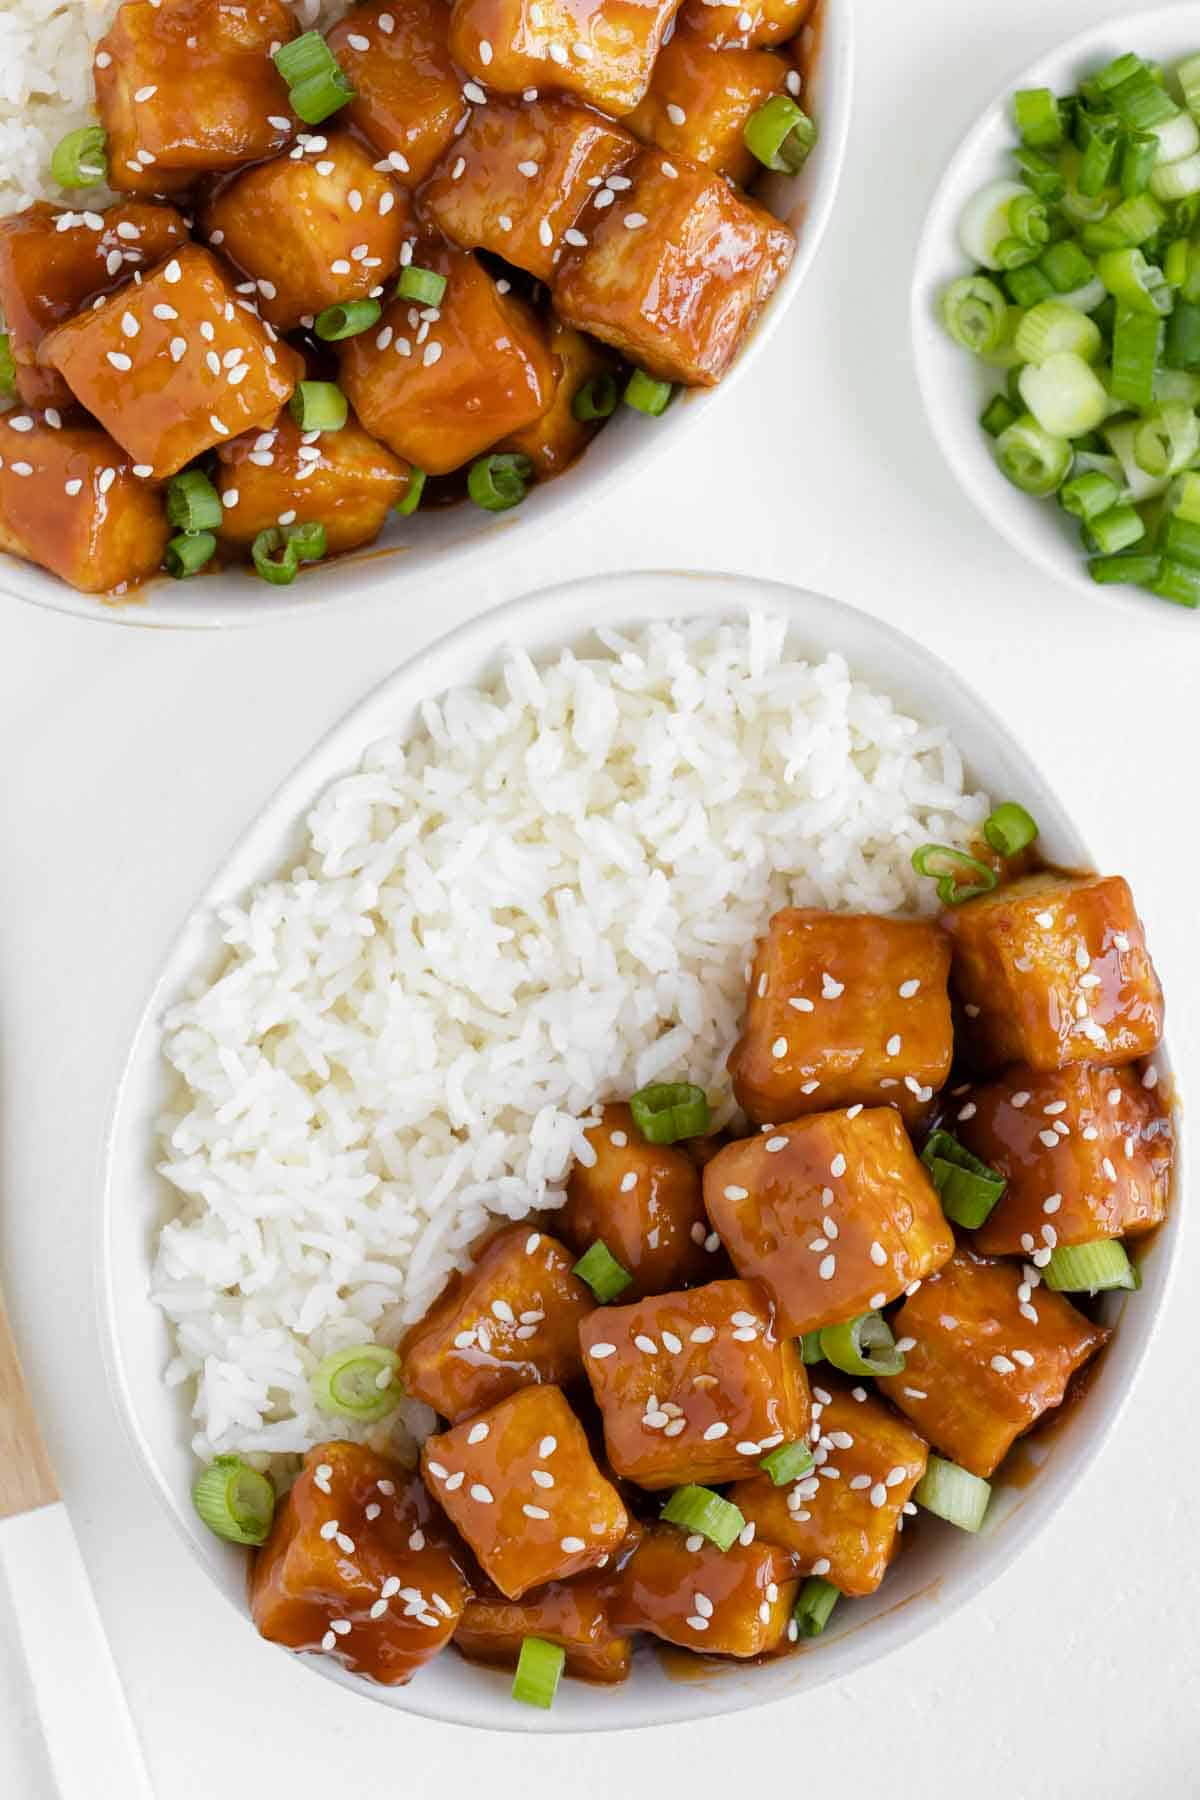 two bowls filled with white rice and crispy baked orange tofu